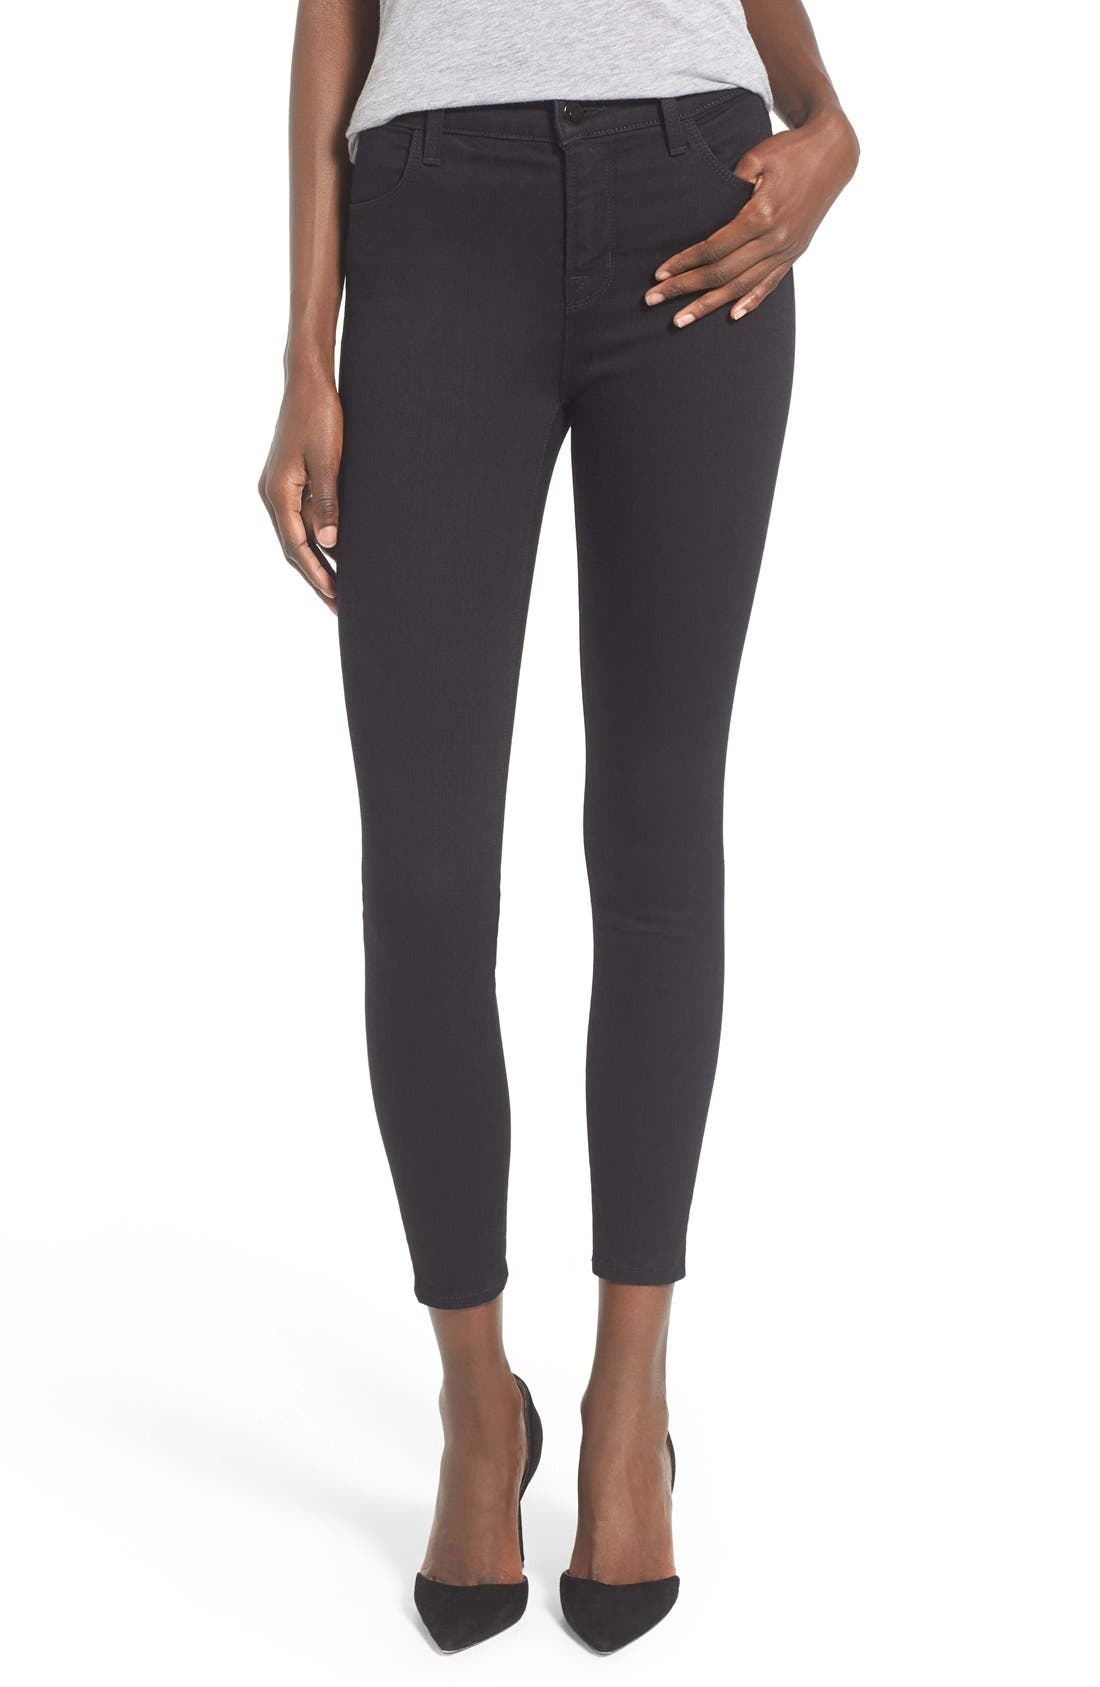 J Brand Alana High Waist Crop Skinny Jeans (Photo Ready Vanity)